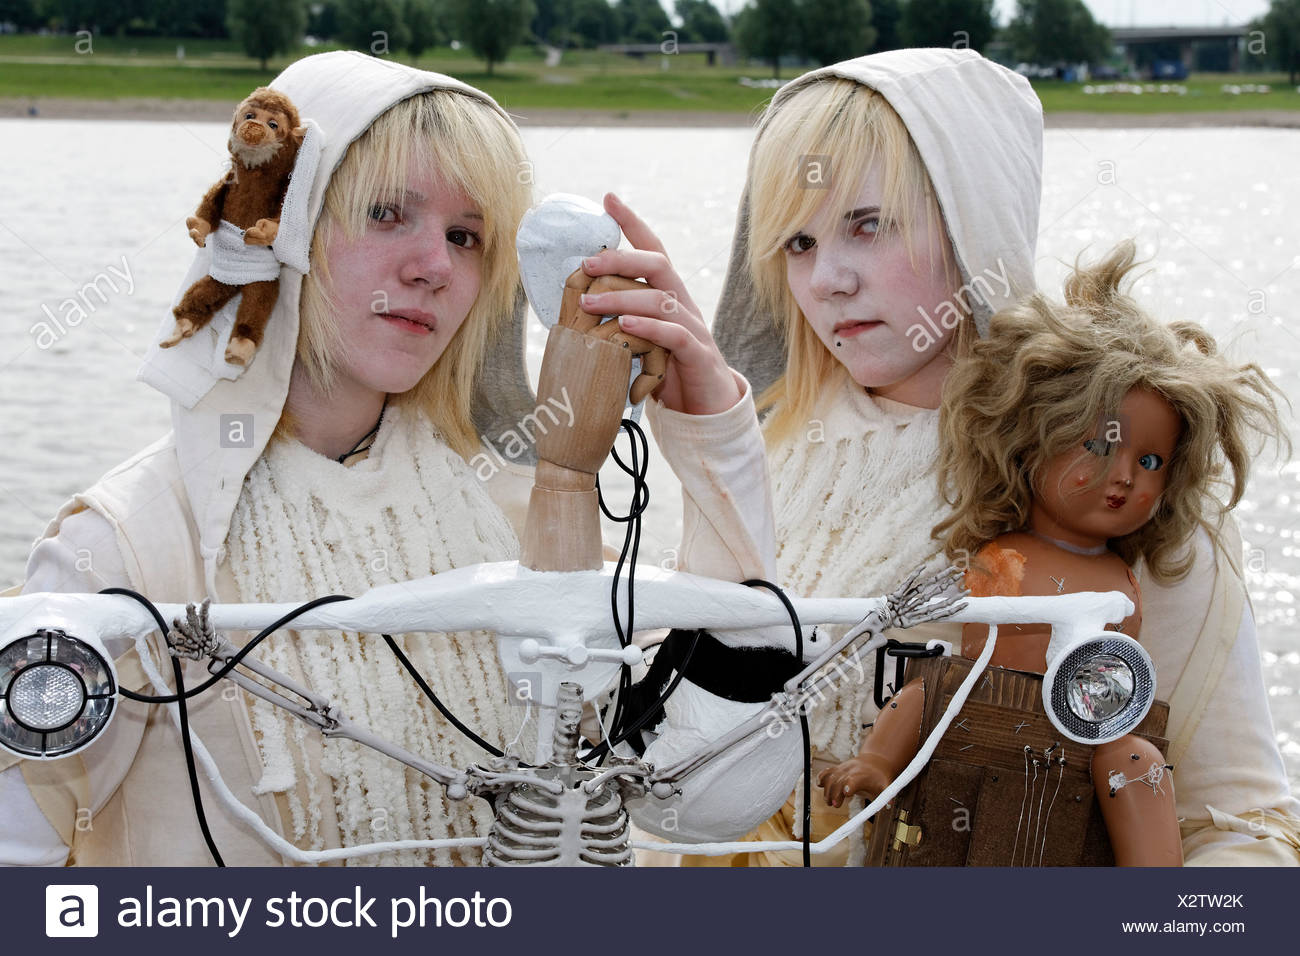 Two Teens In White Robes With Doll And Stuffed Animal Portraying Fantasy Characters Bizarre Costumes White Makeup Cosplayers Stock Photo Alamy